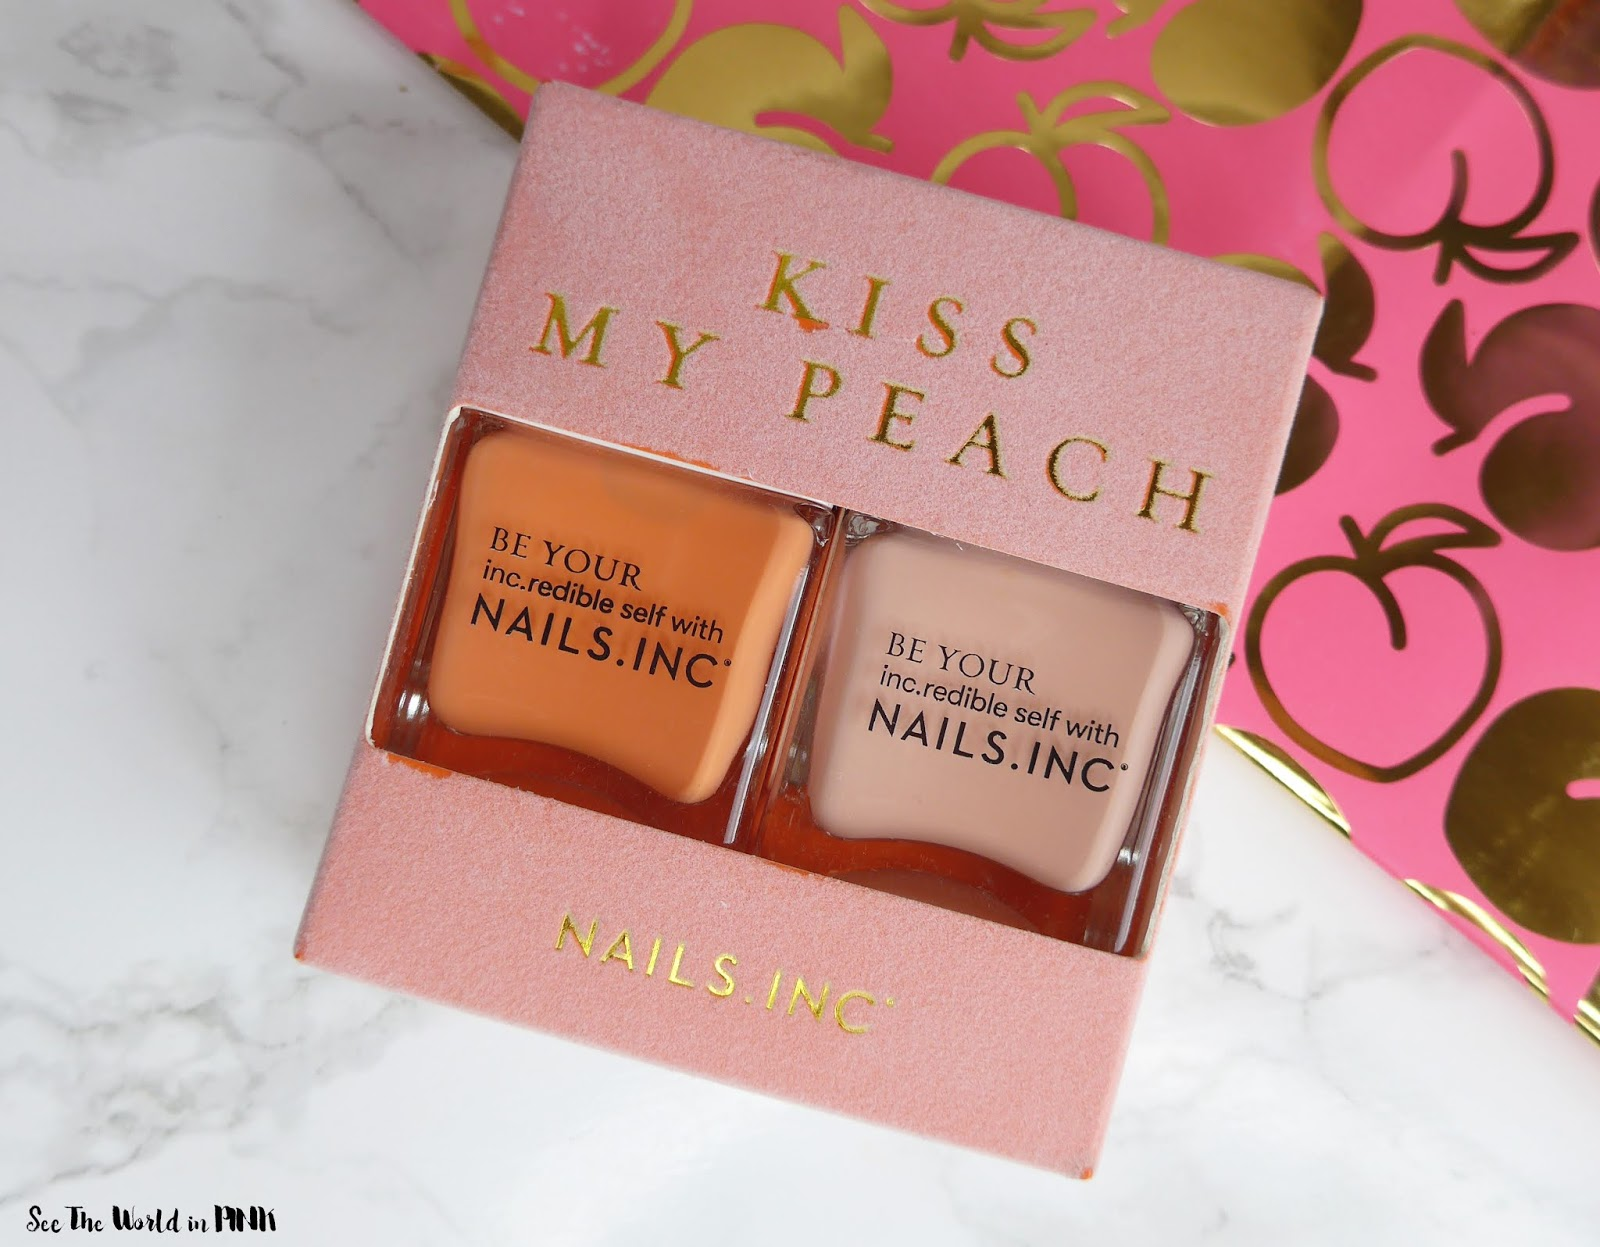 Manicure Monday - Nails Inc Kiss My Peach Duo Nail Set